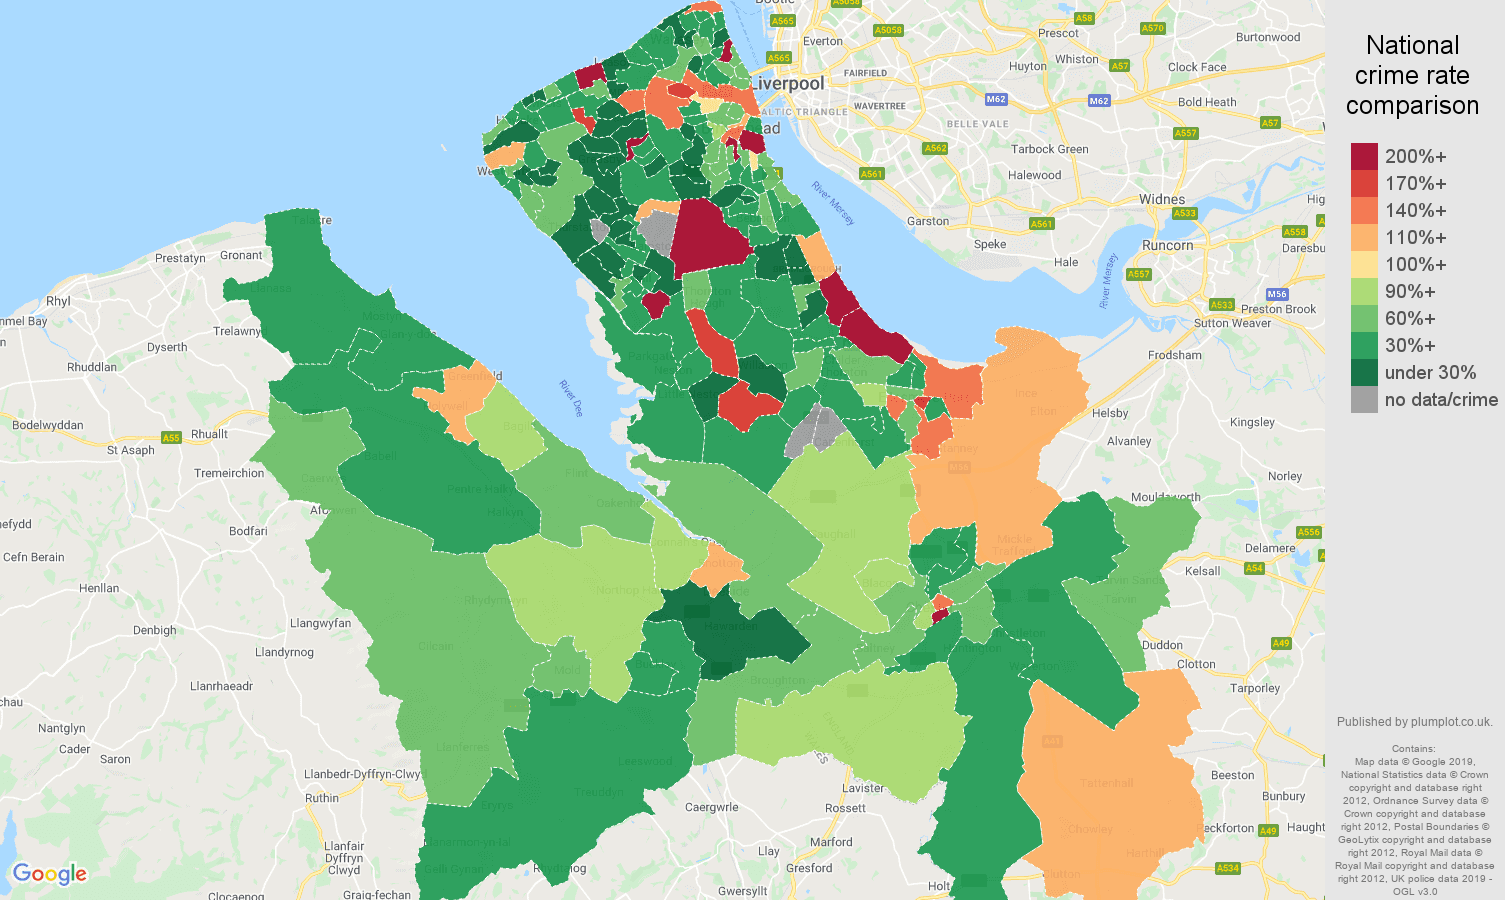 Chester other theft crime rate comparison map